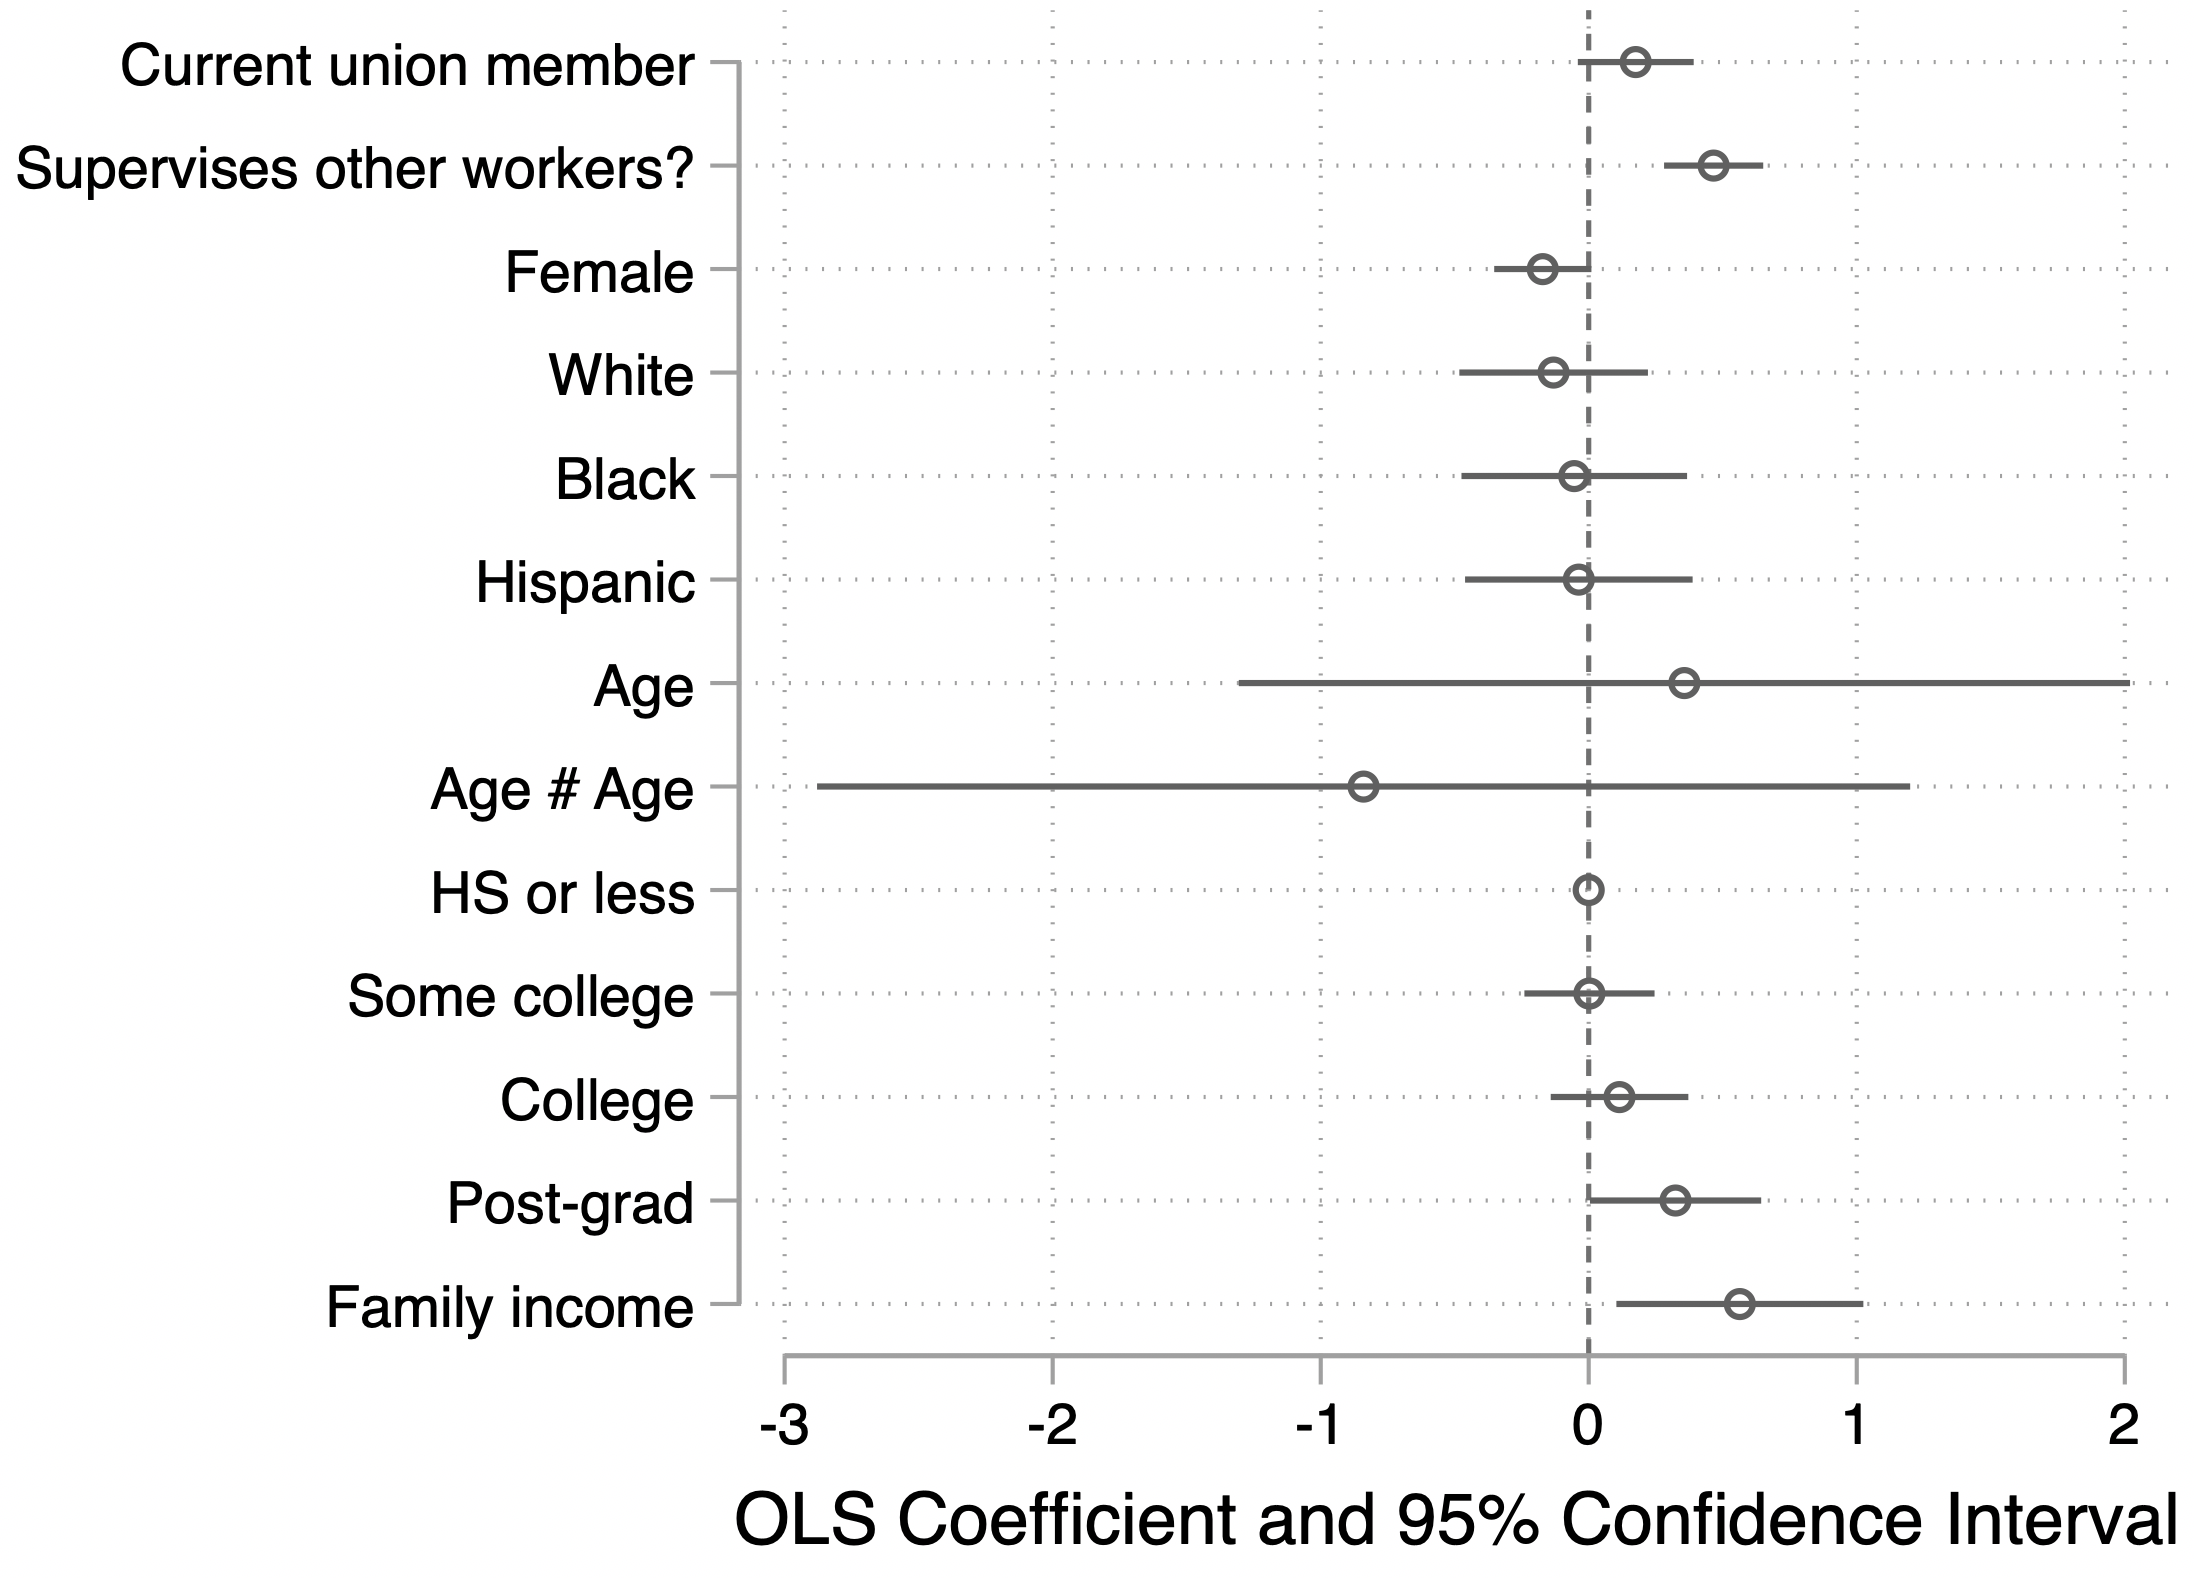 Predicting use of political discussion at work (0-4 scale): Union membership as predictor